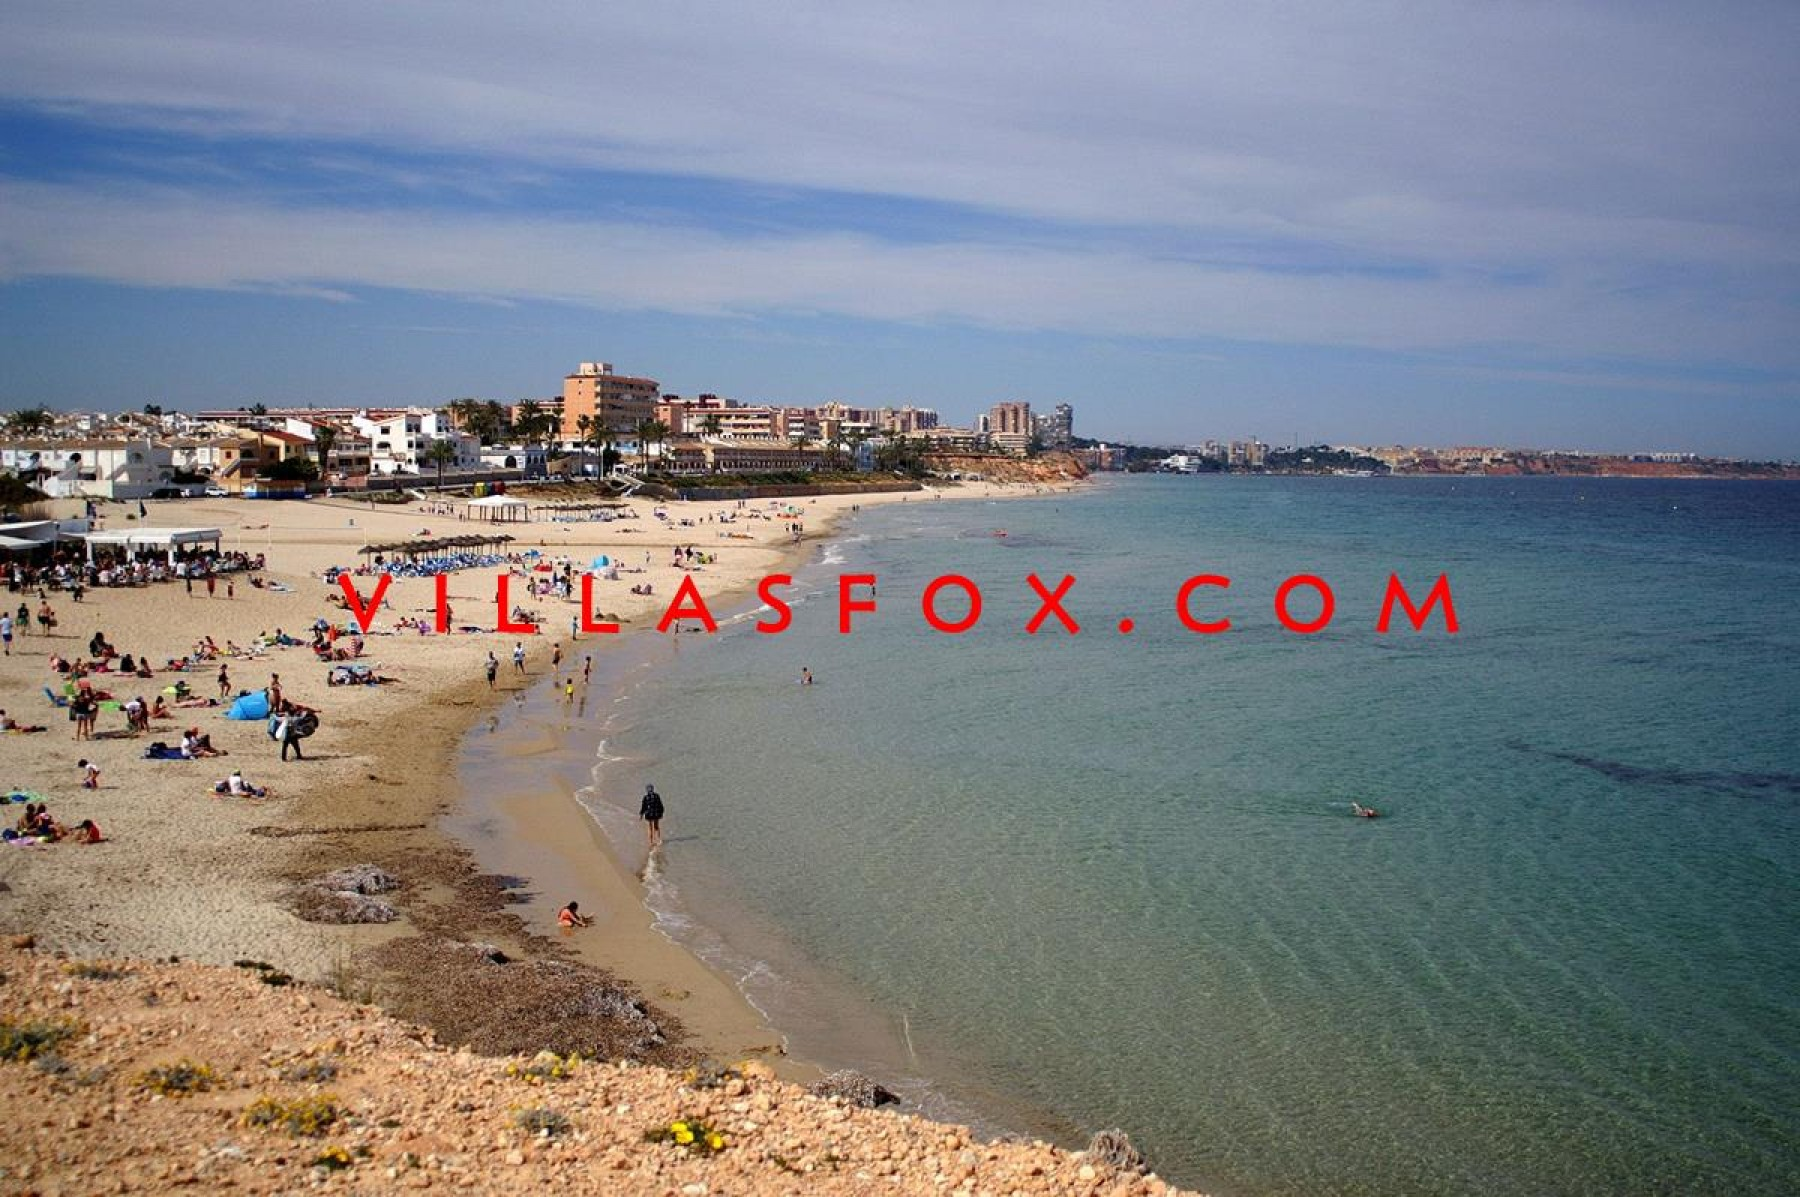 2-bedroom, 2-bathroom apartment, San Miguel de Salinas, lift, pool